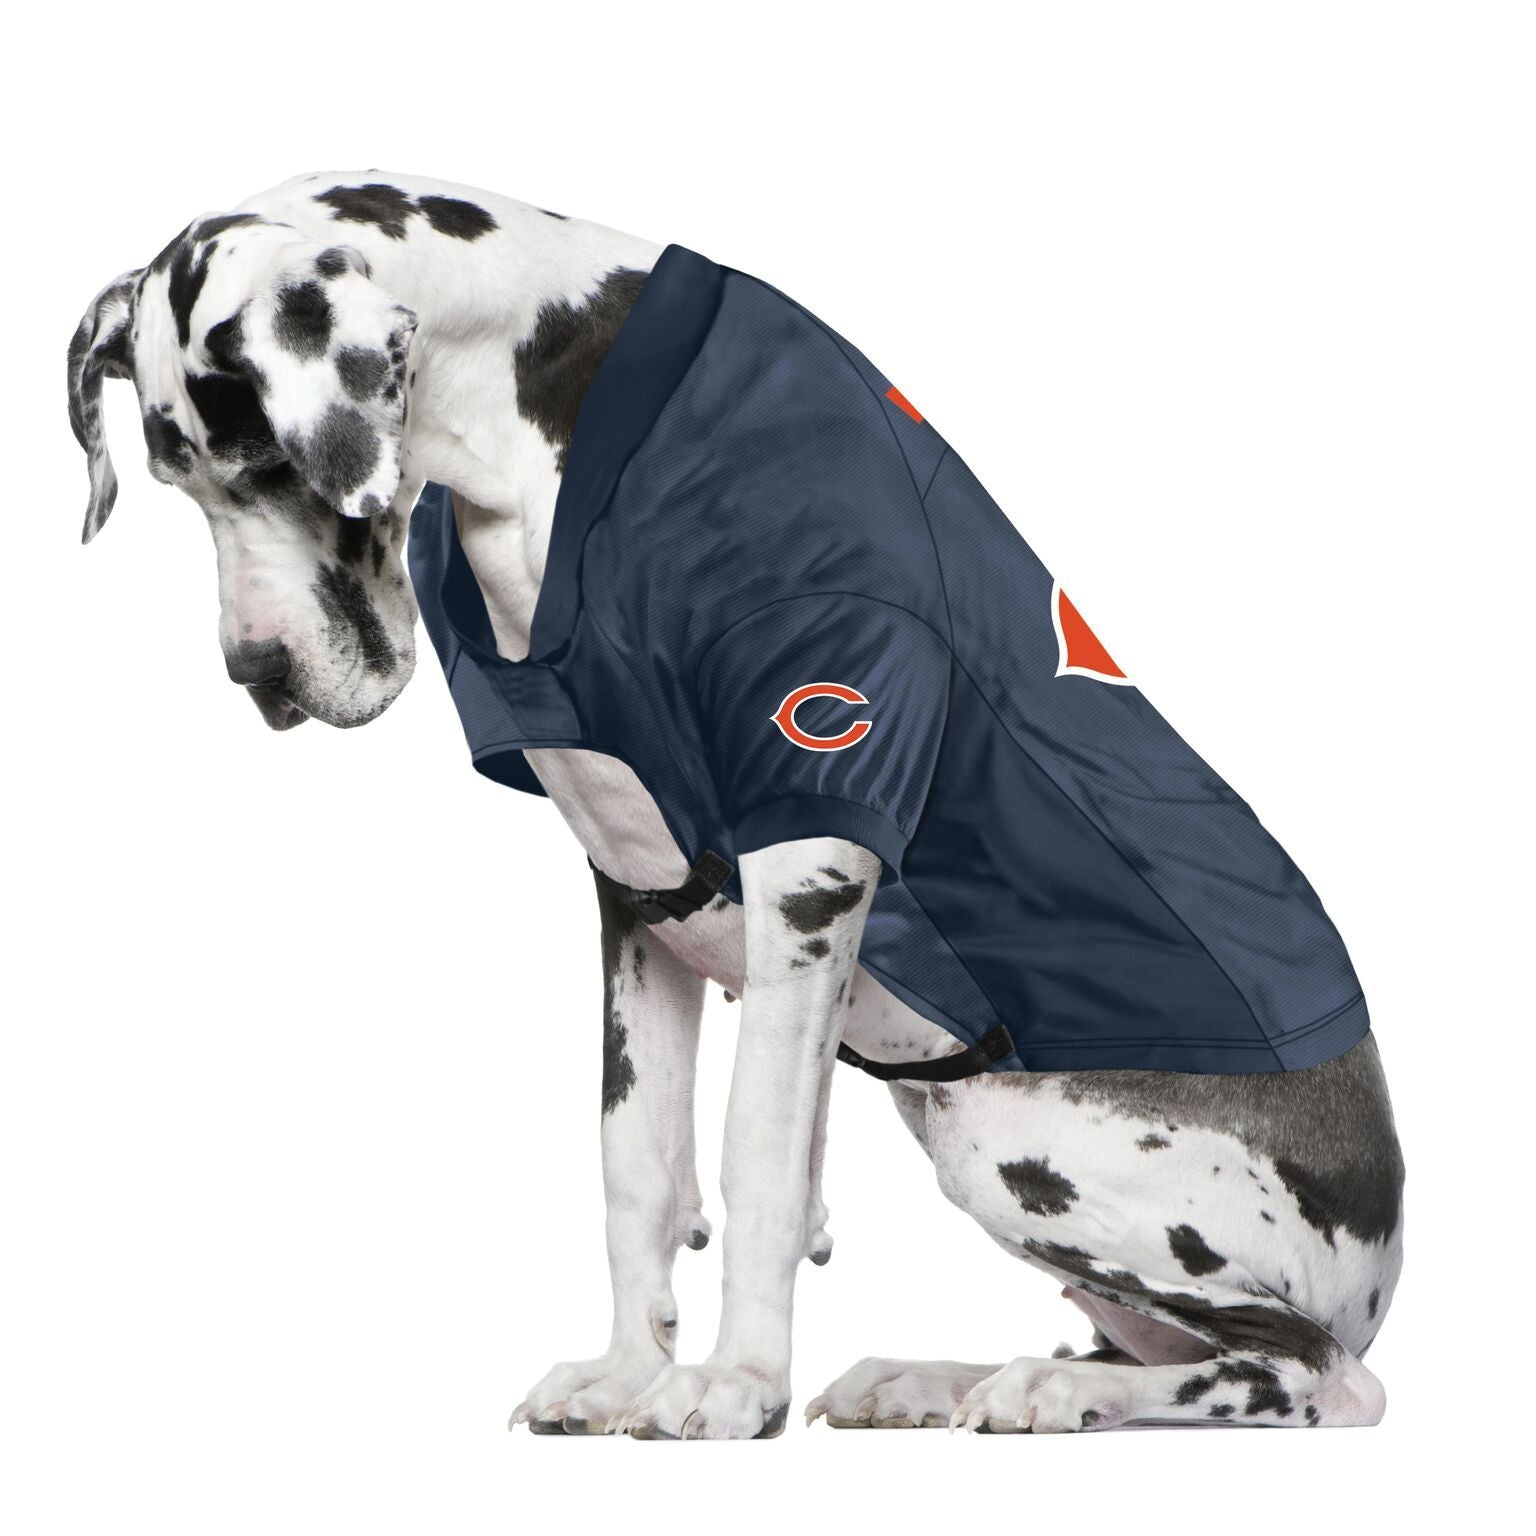 Bears fan jersey for your dog